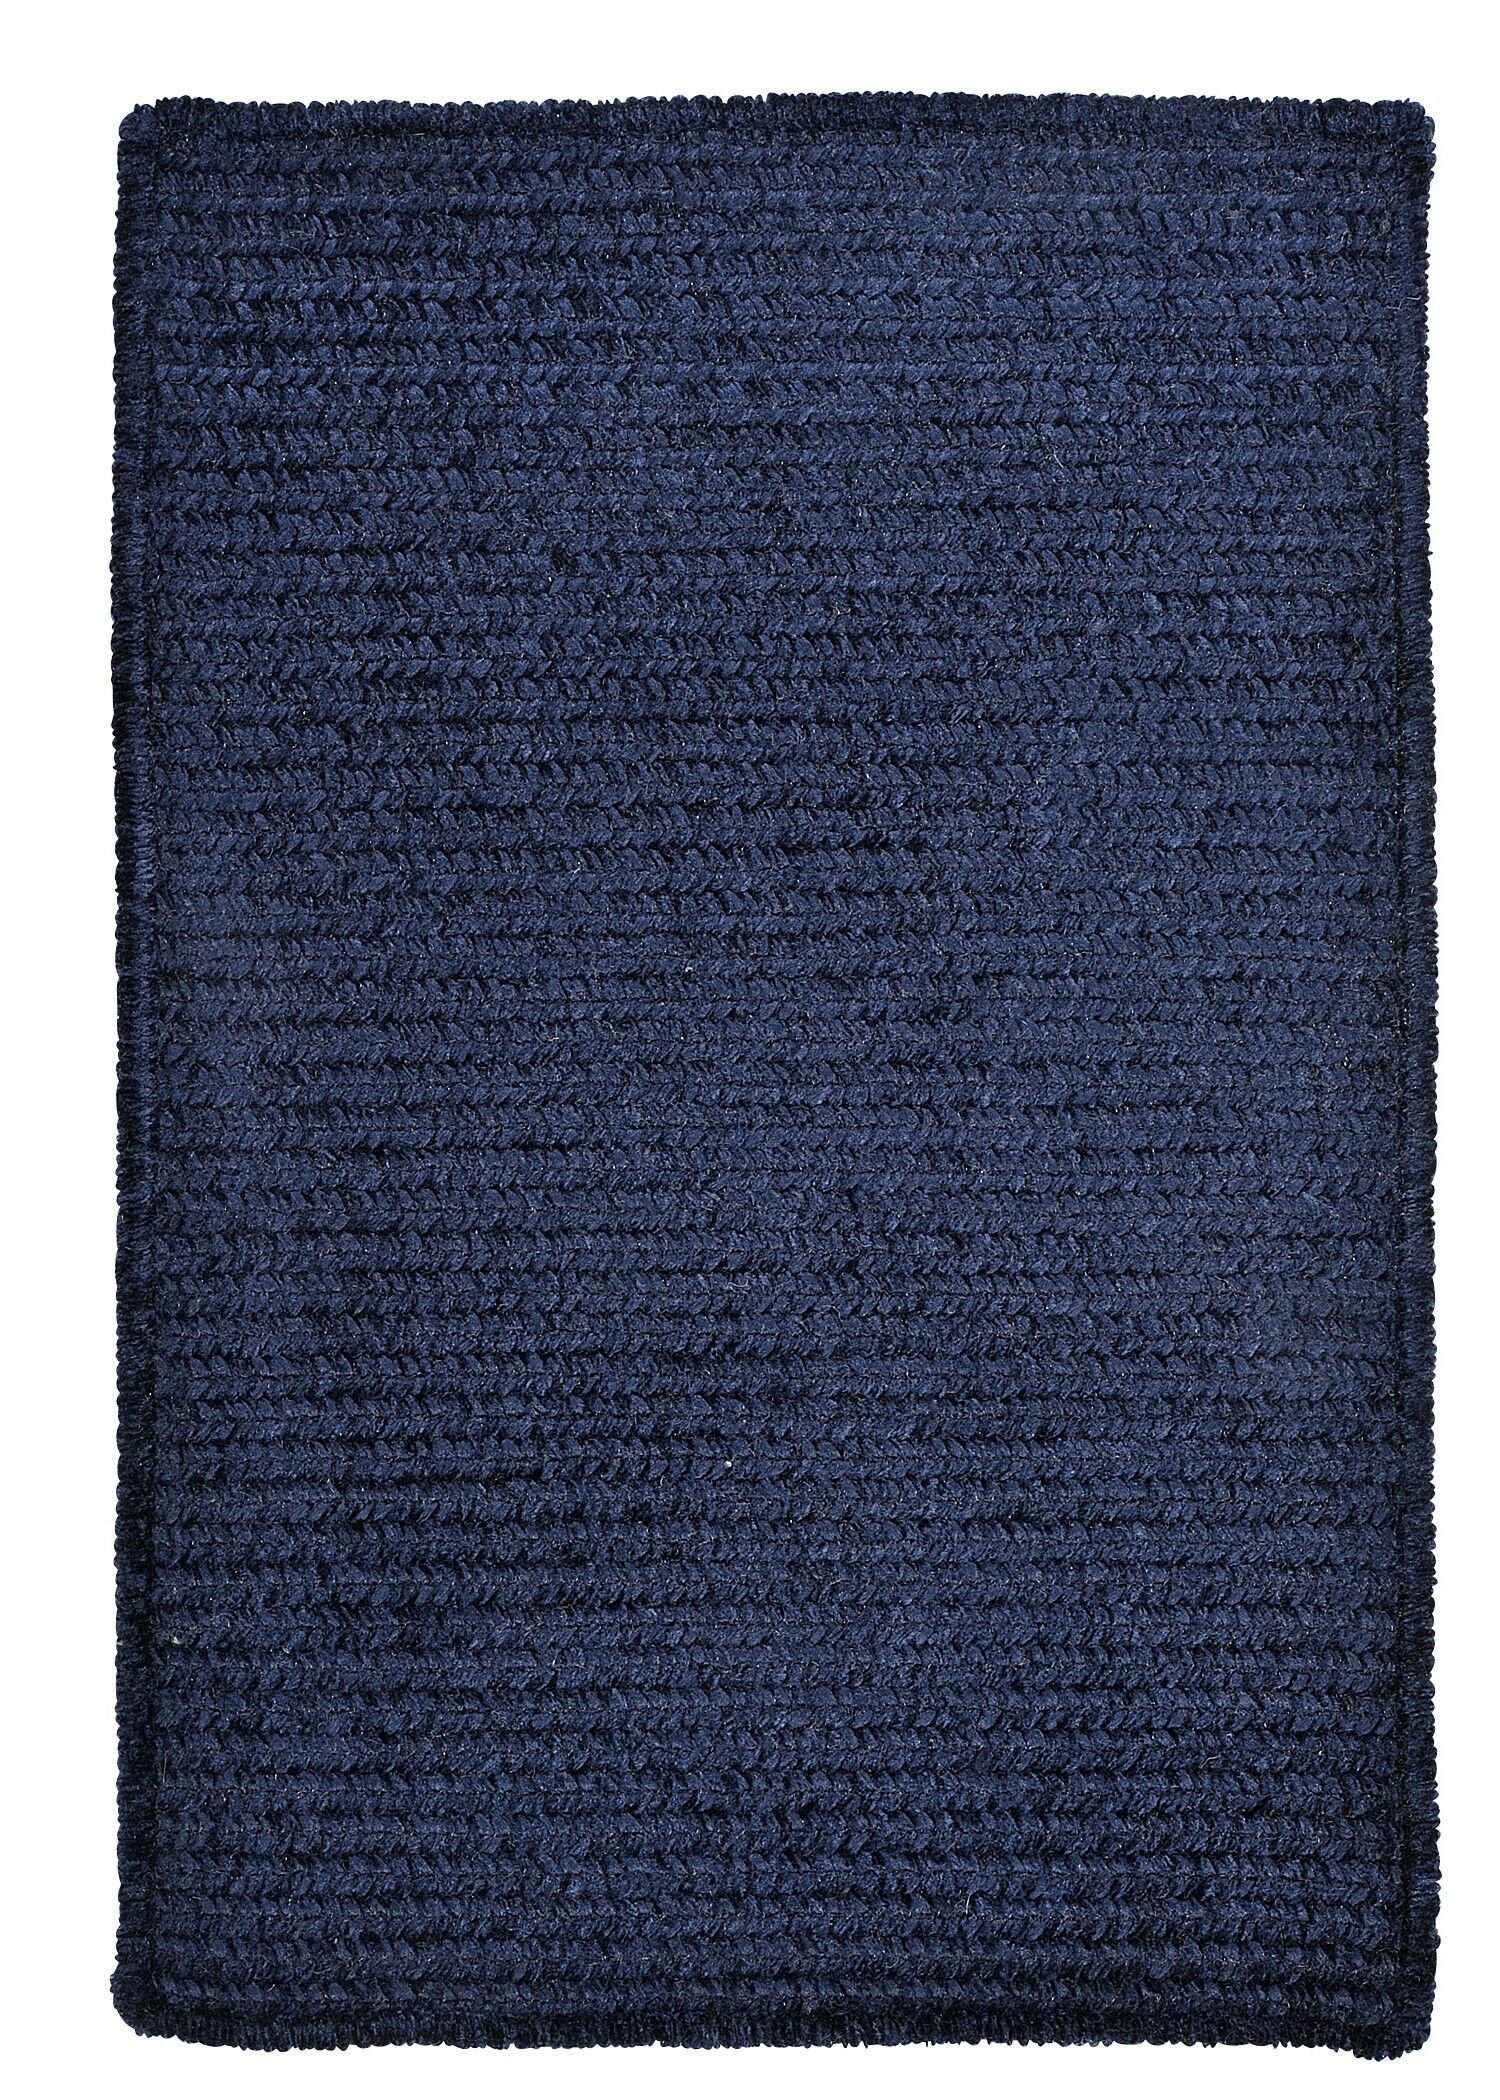 Gibbons Navy Indoor/Outdoor Area Rug Rug Size: Rectangle 5' x 8'